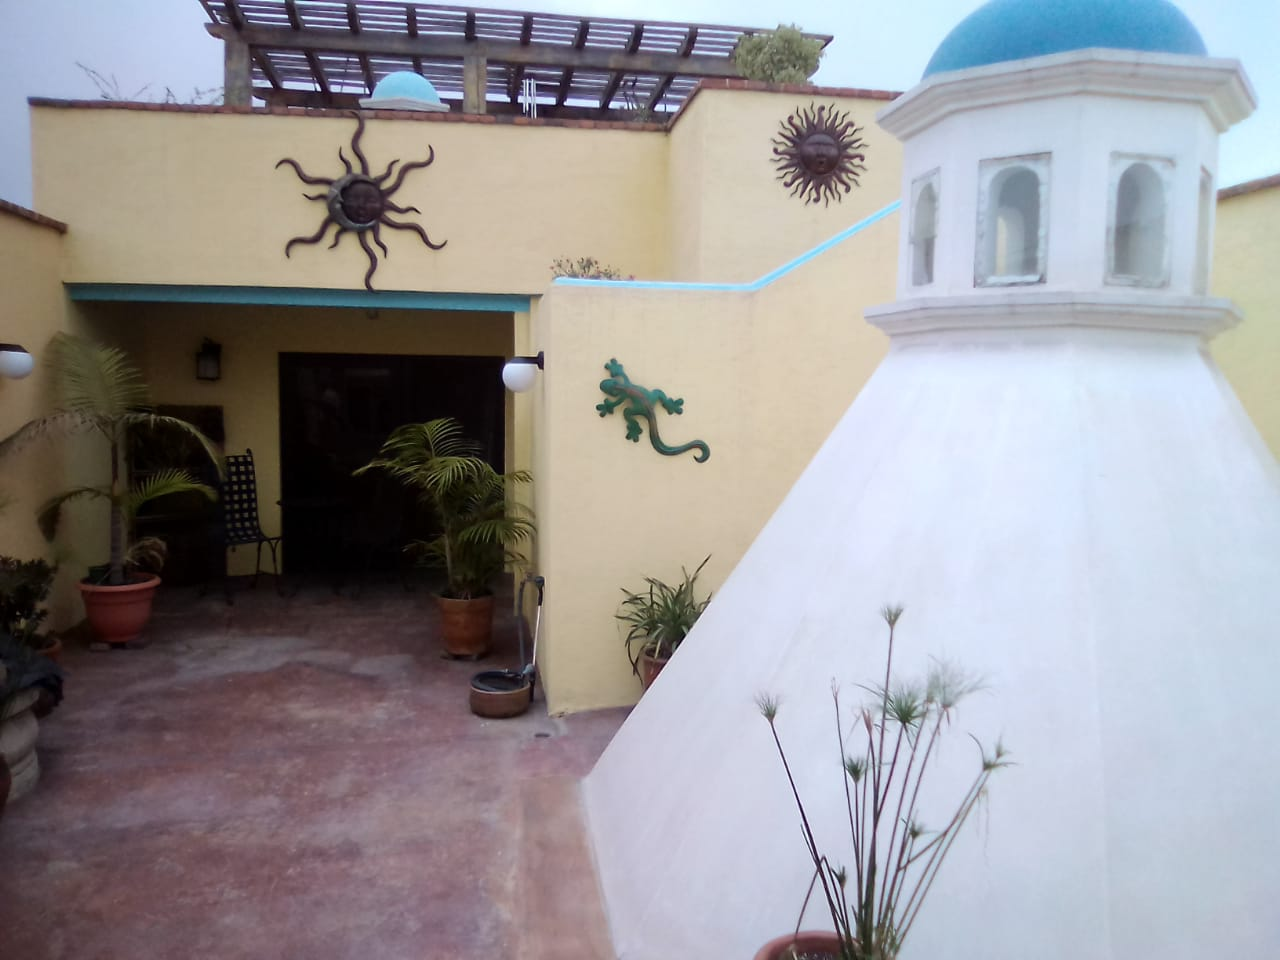 4821 SPECTACULAR HOUSE FOR SALE IN  SAN MIGUEL DUEÑAS